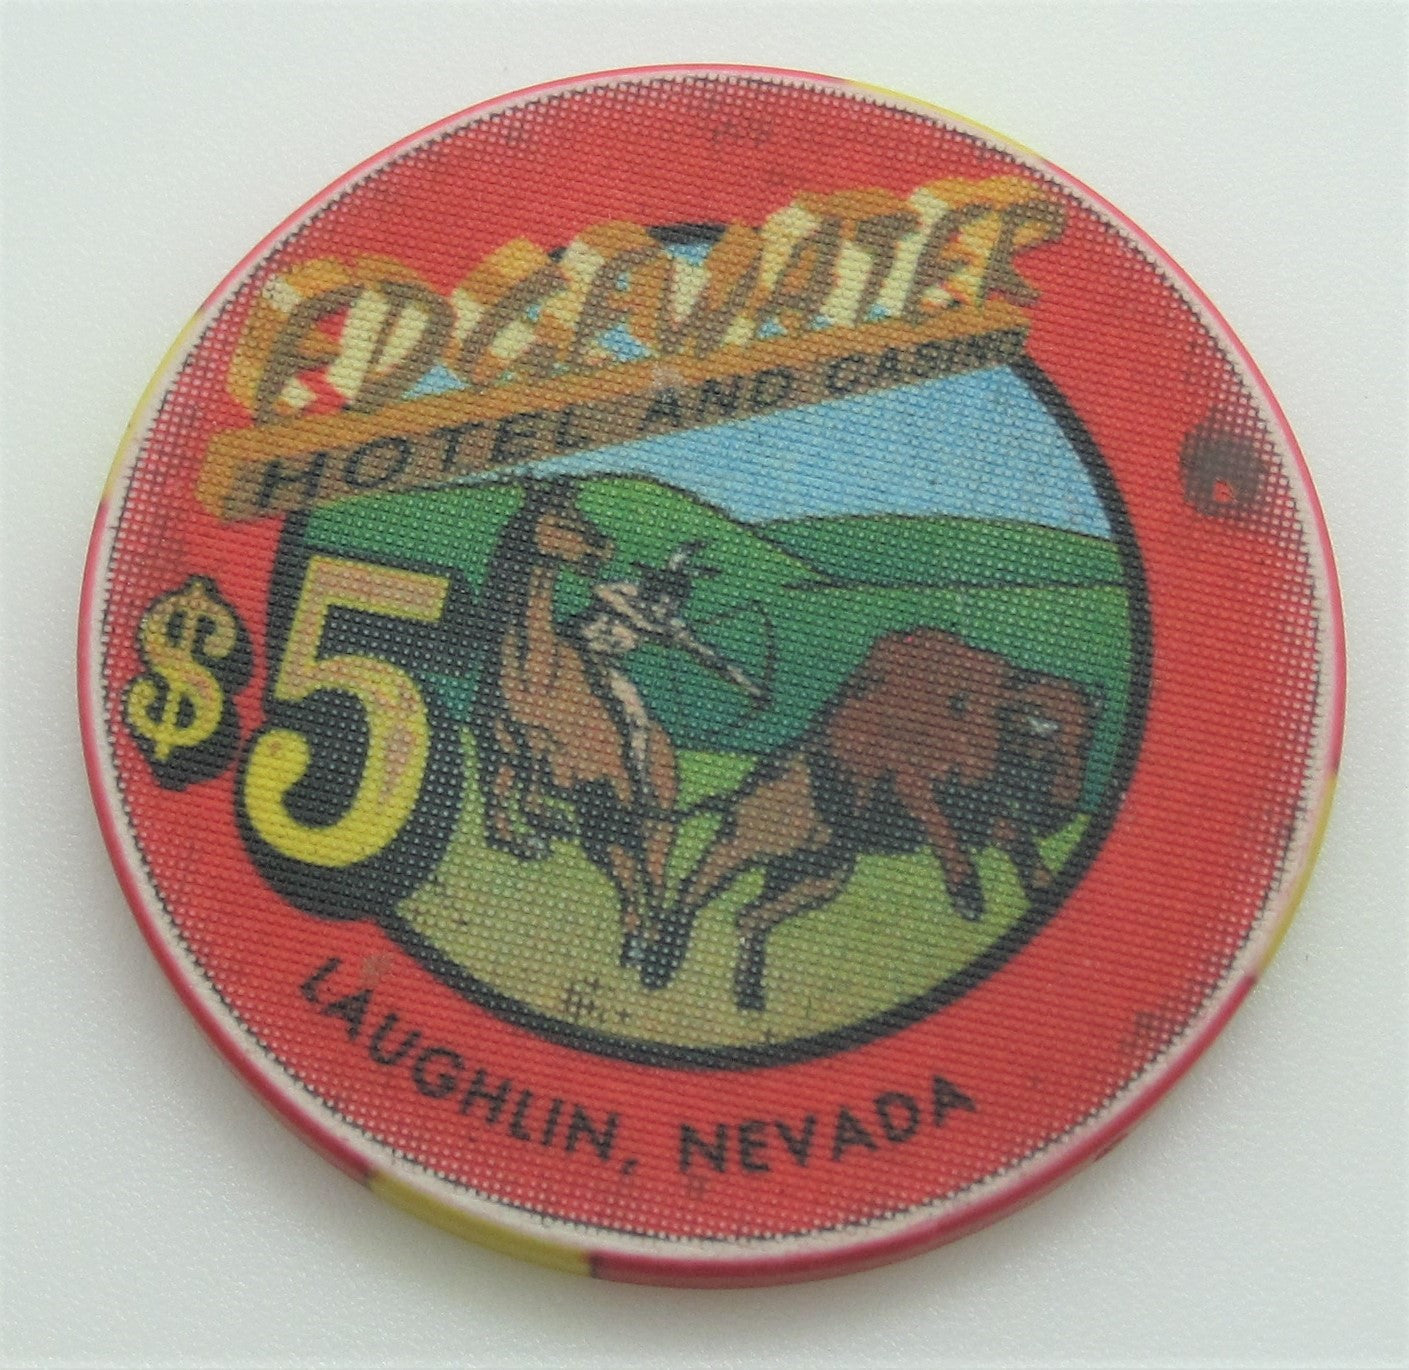 Edgewater Casino Laughlin $5 Chip 1995